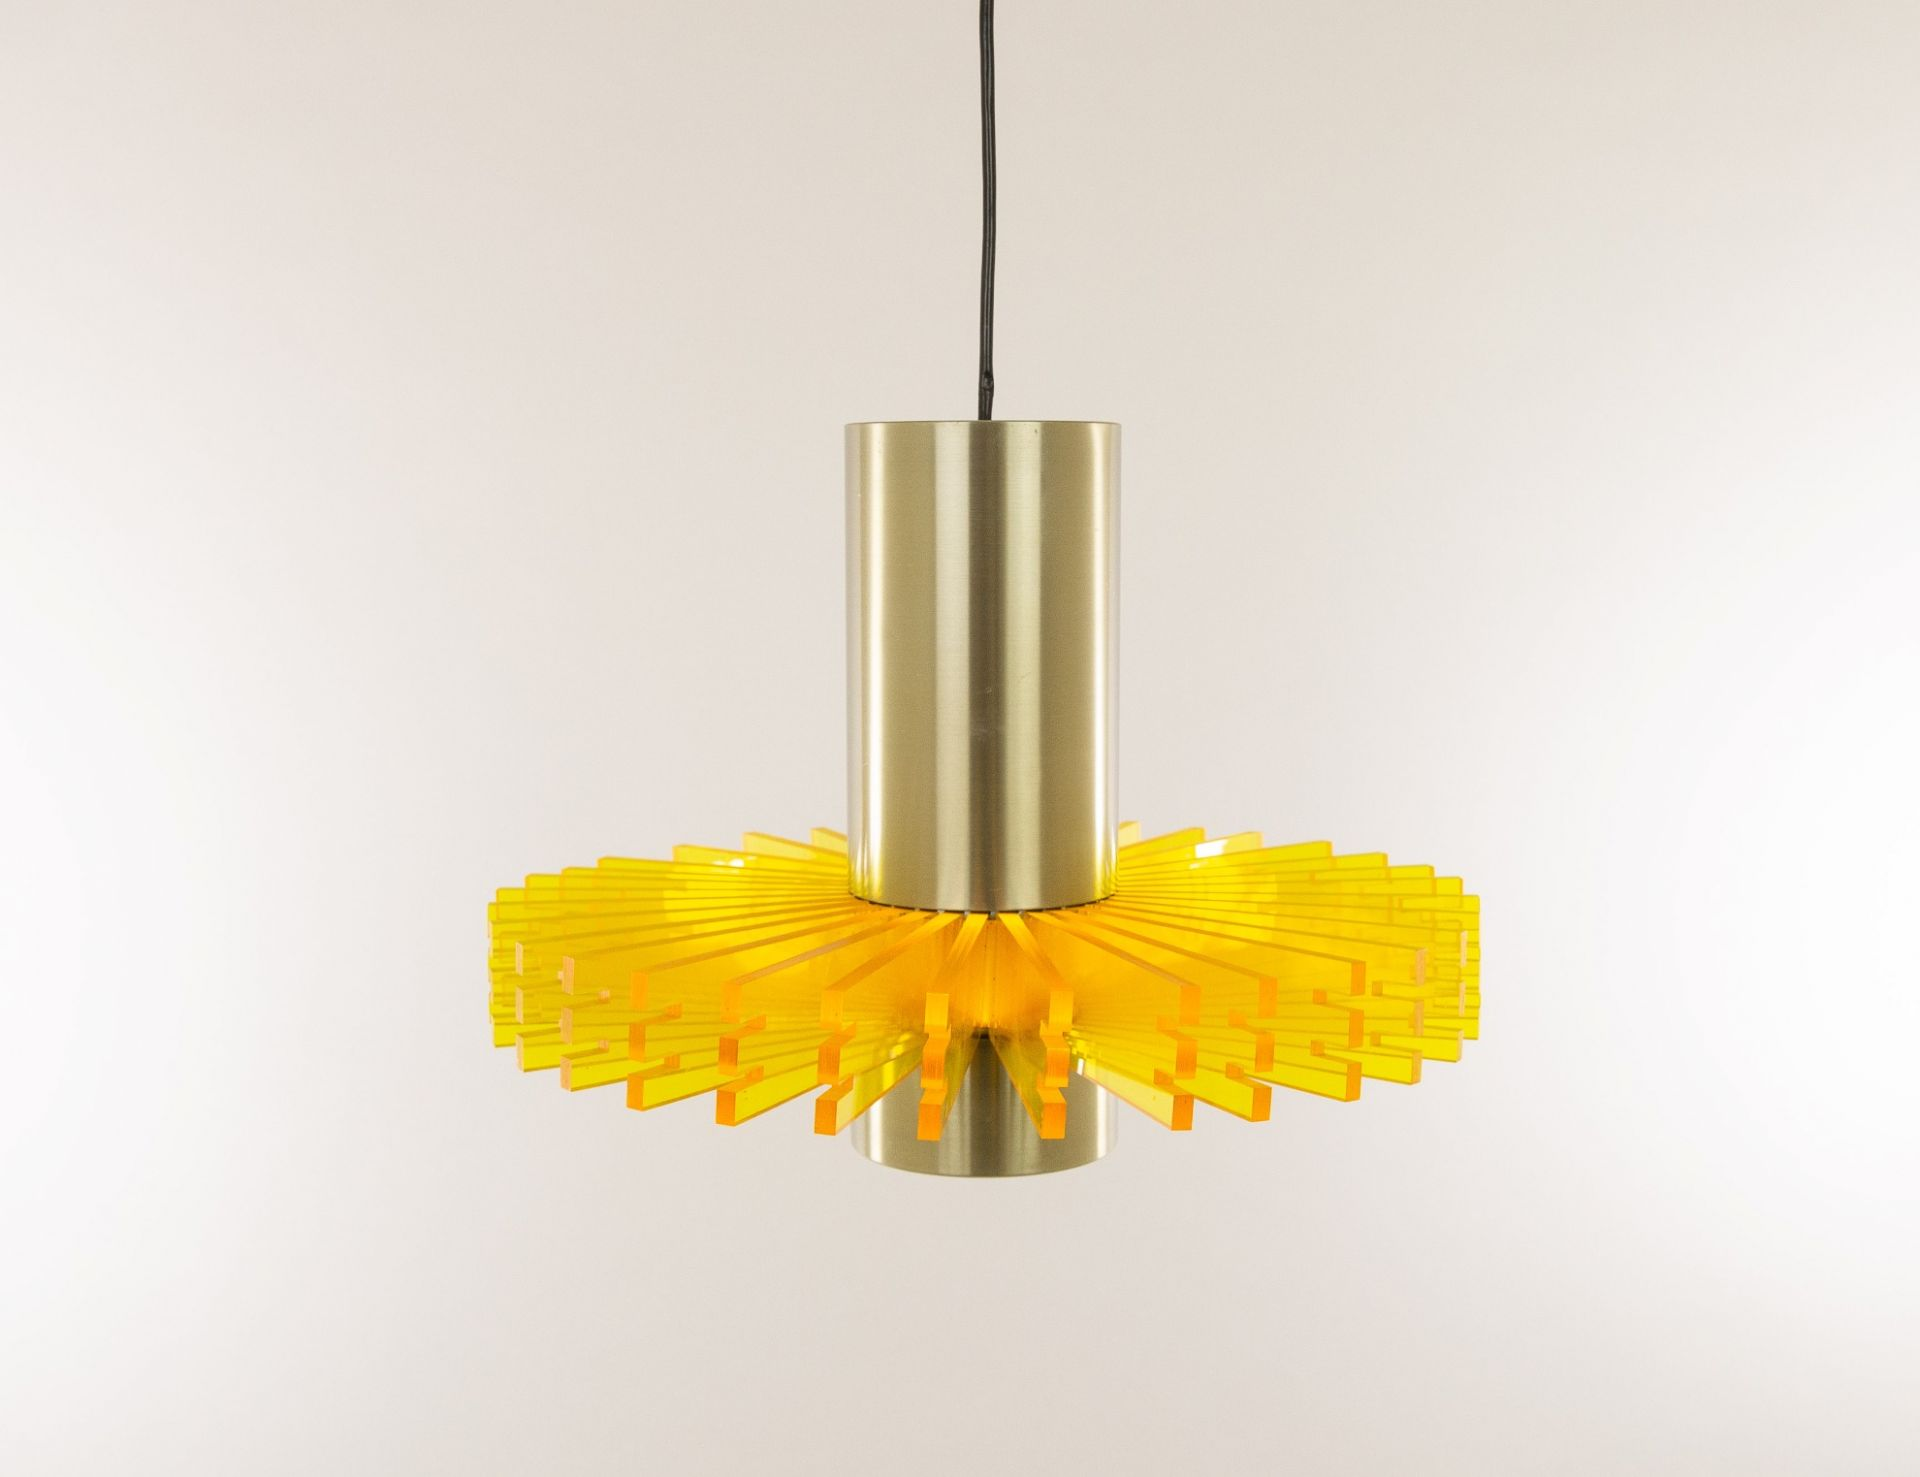 Yellow 'Priest collar' pendant by Claus Bolby for Cebo Industri, 1960s